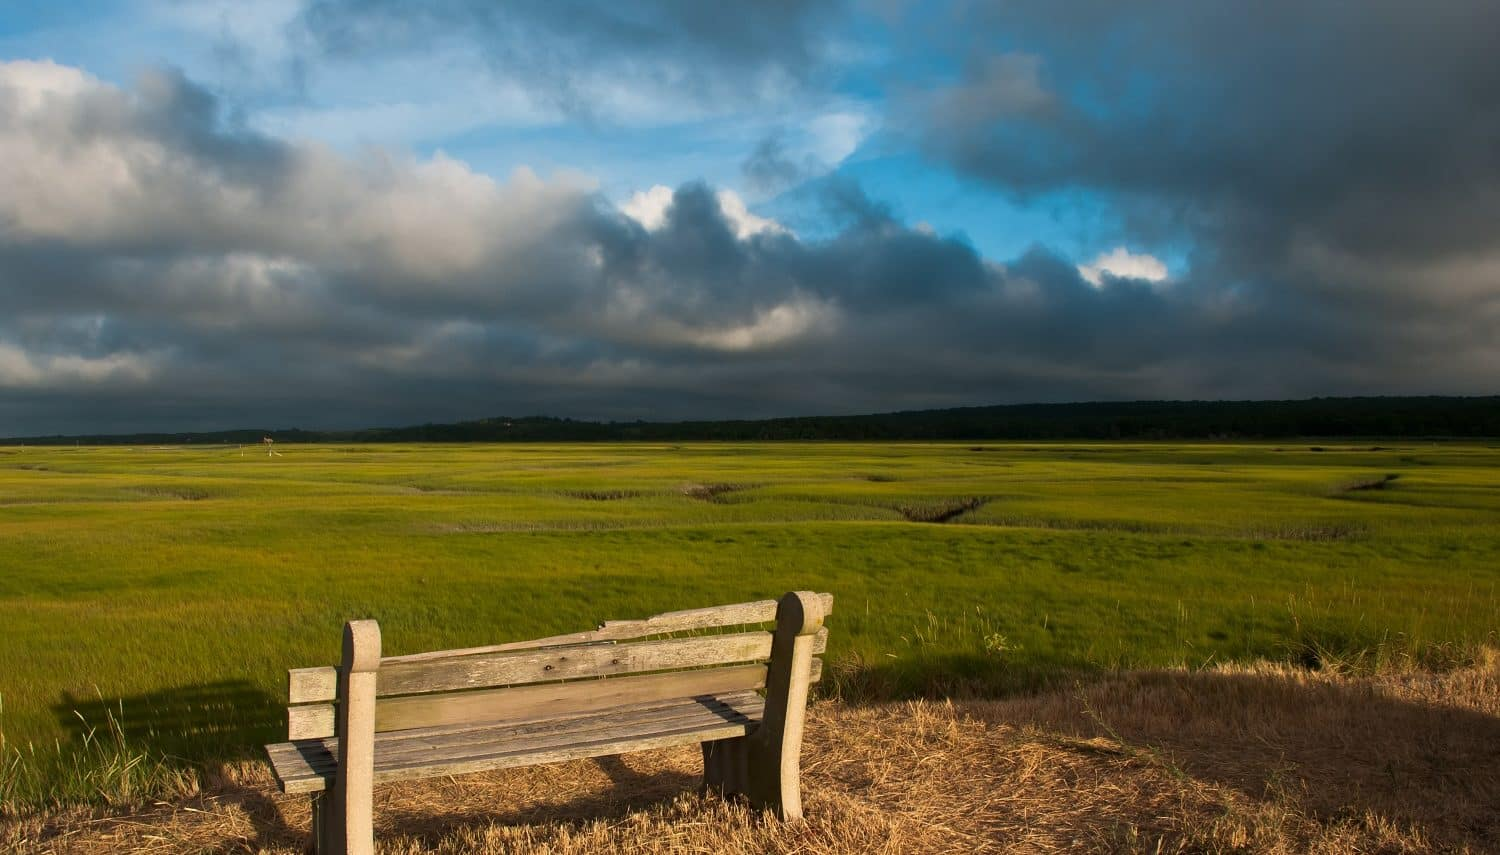 A bench in an open field in Dennis, MA